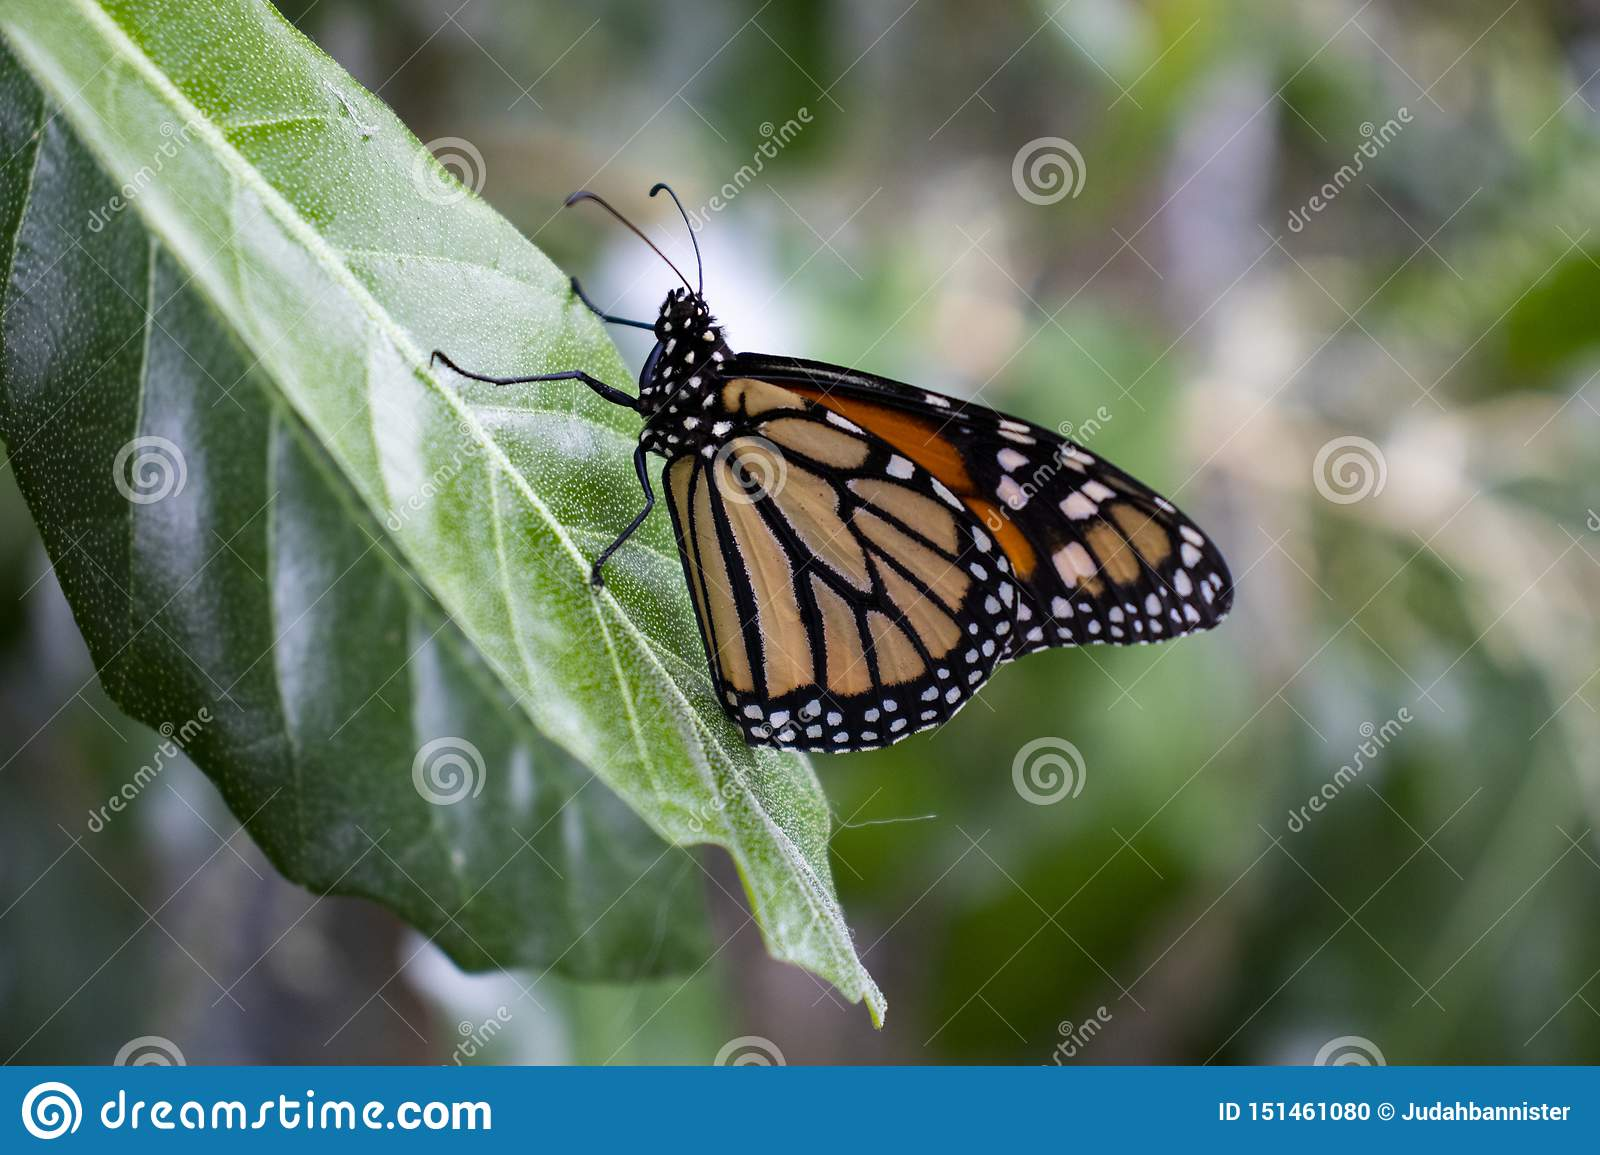 Monarch butterfly close up shot on a leaf